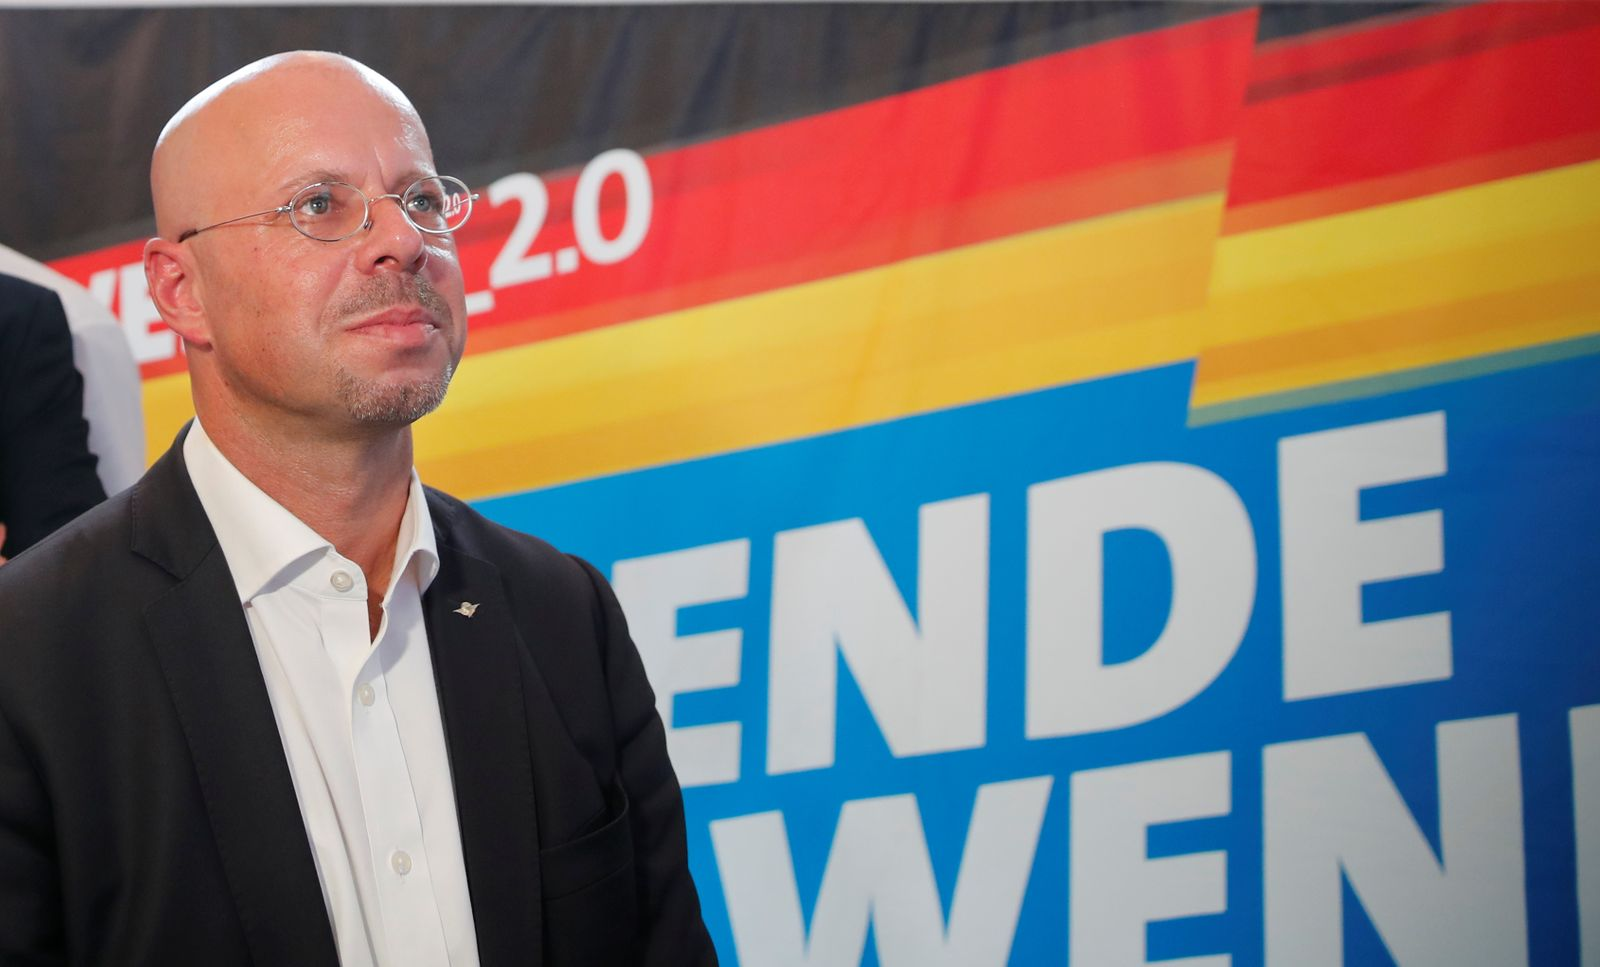 Alternative for Germany (AfD) top candidate for the Brandenburg election Andreas Kalbitz reacts for the first exit polls for the Brandenburg state election in Werder